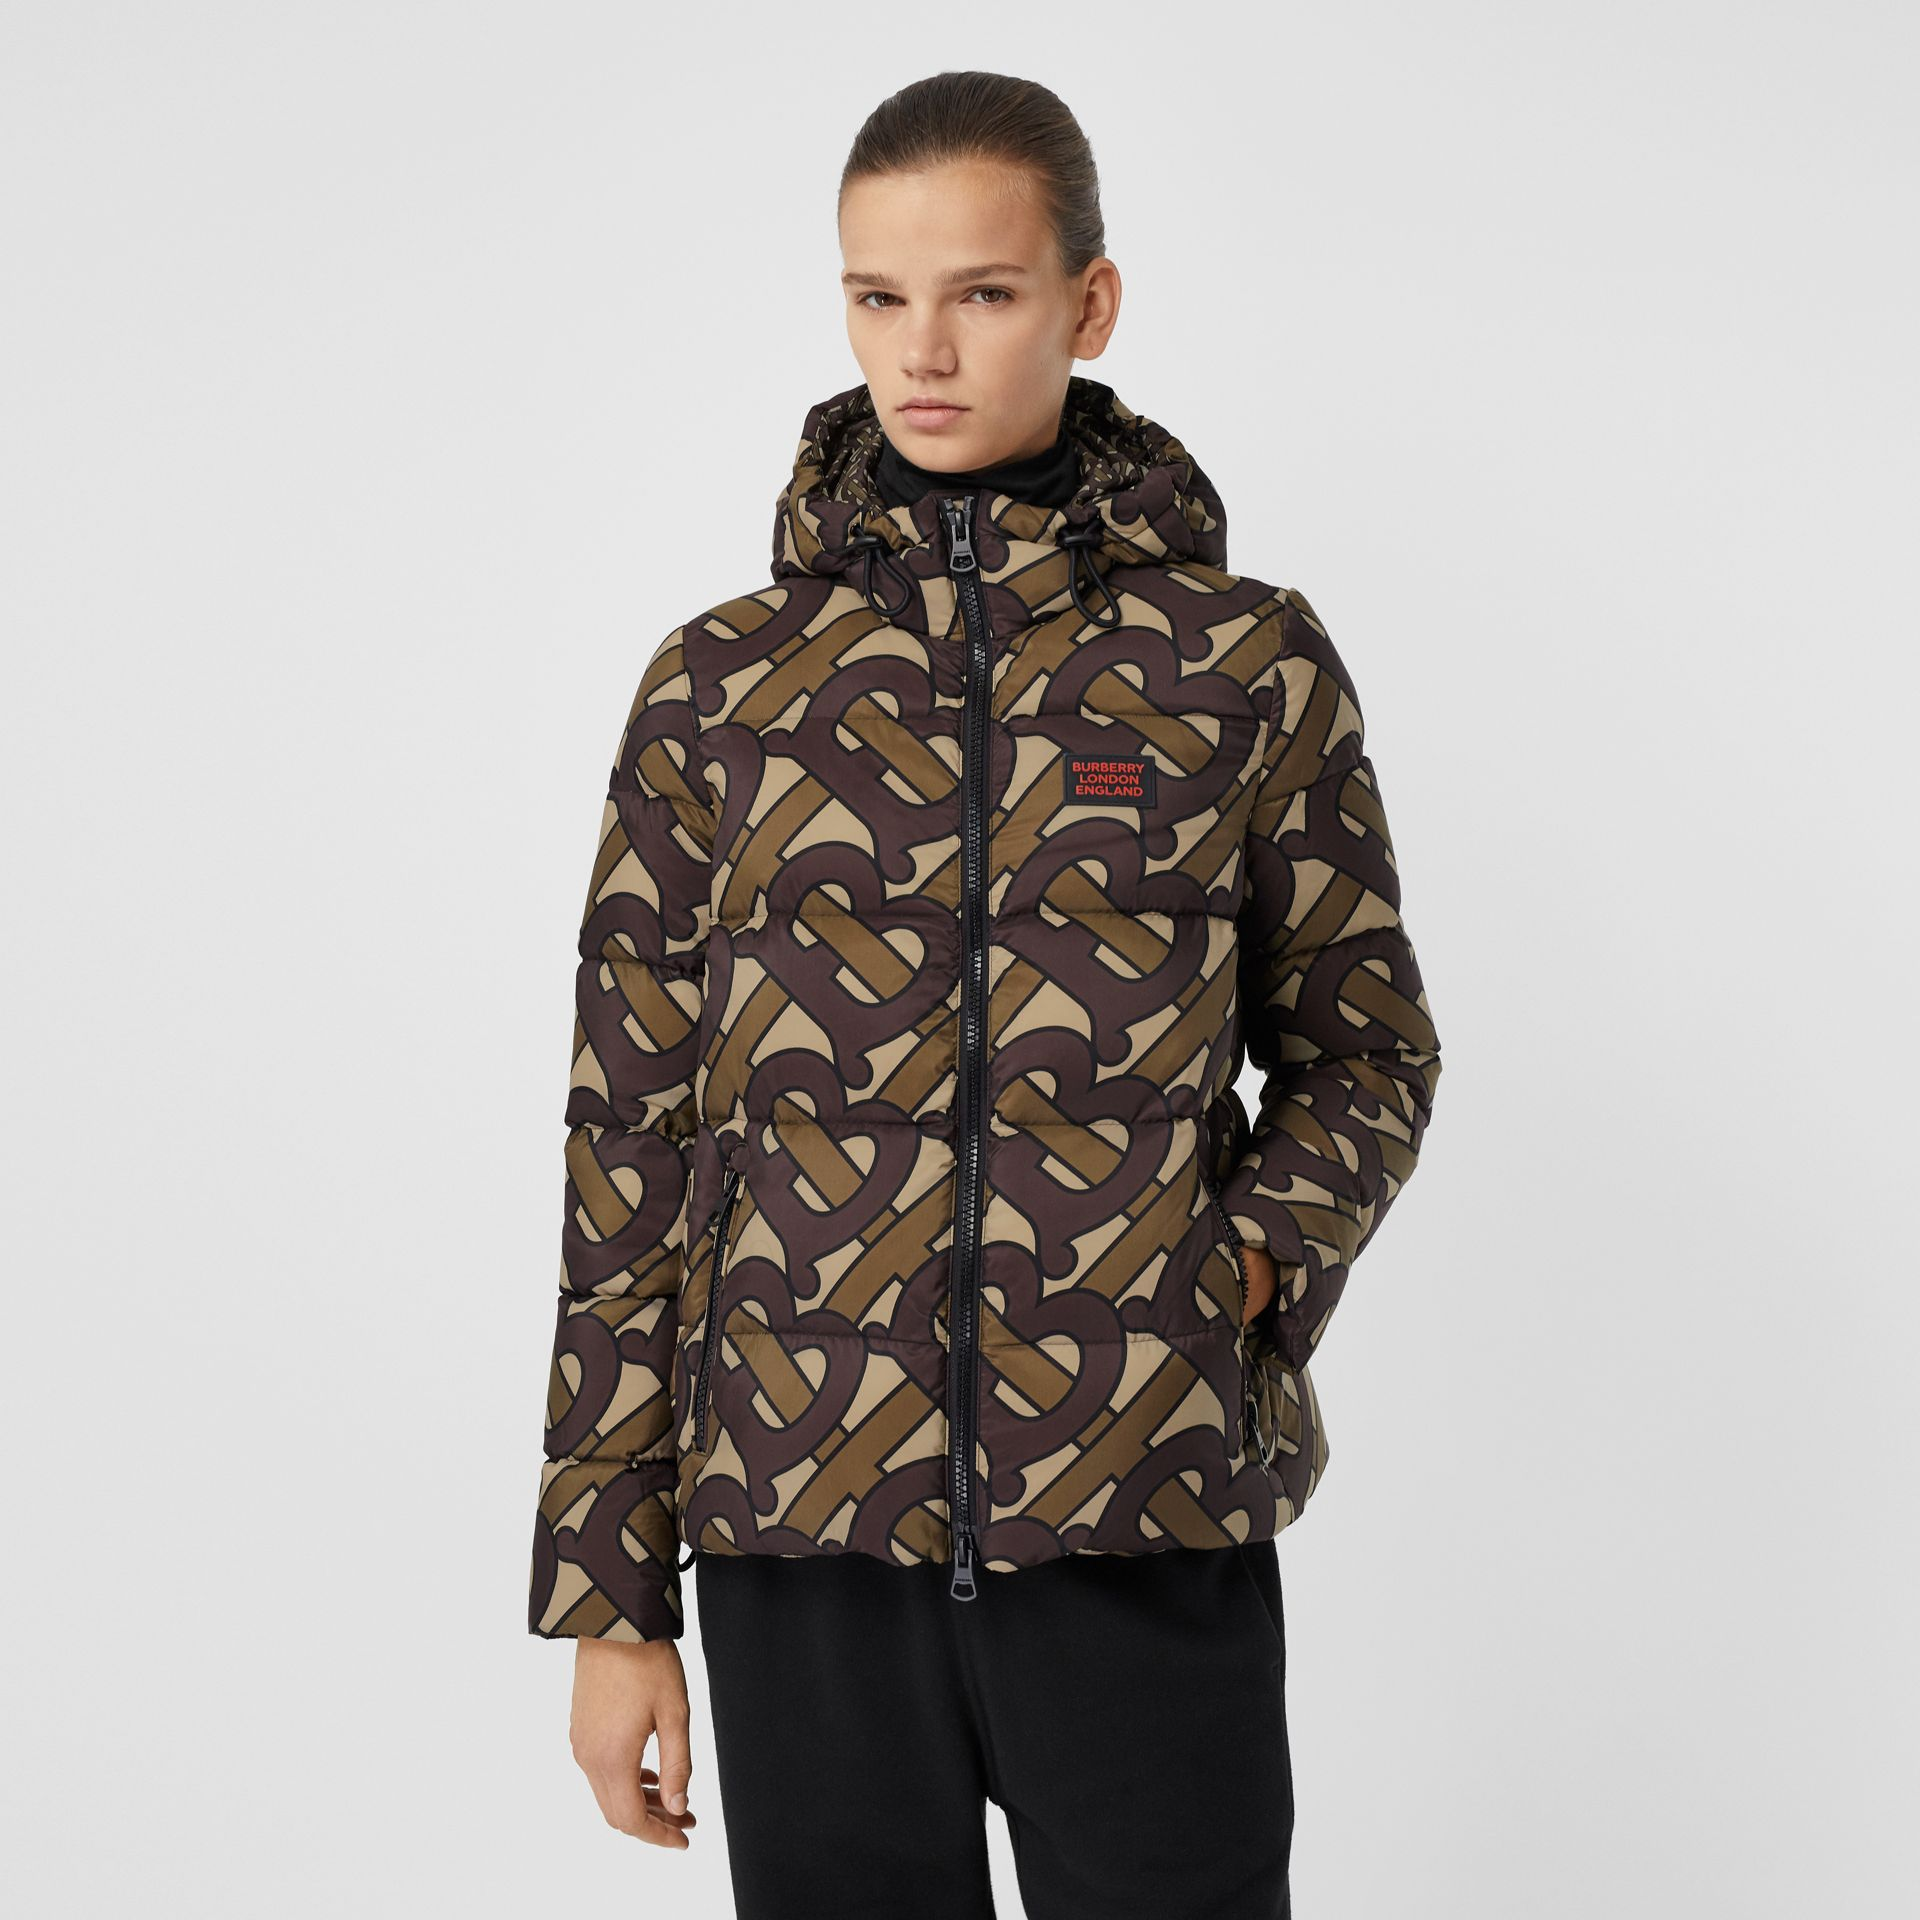 Monogram Print Hooded Puffer Jacket in Bridle Brown - Women | Burberry Singapore - gallery image 4